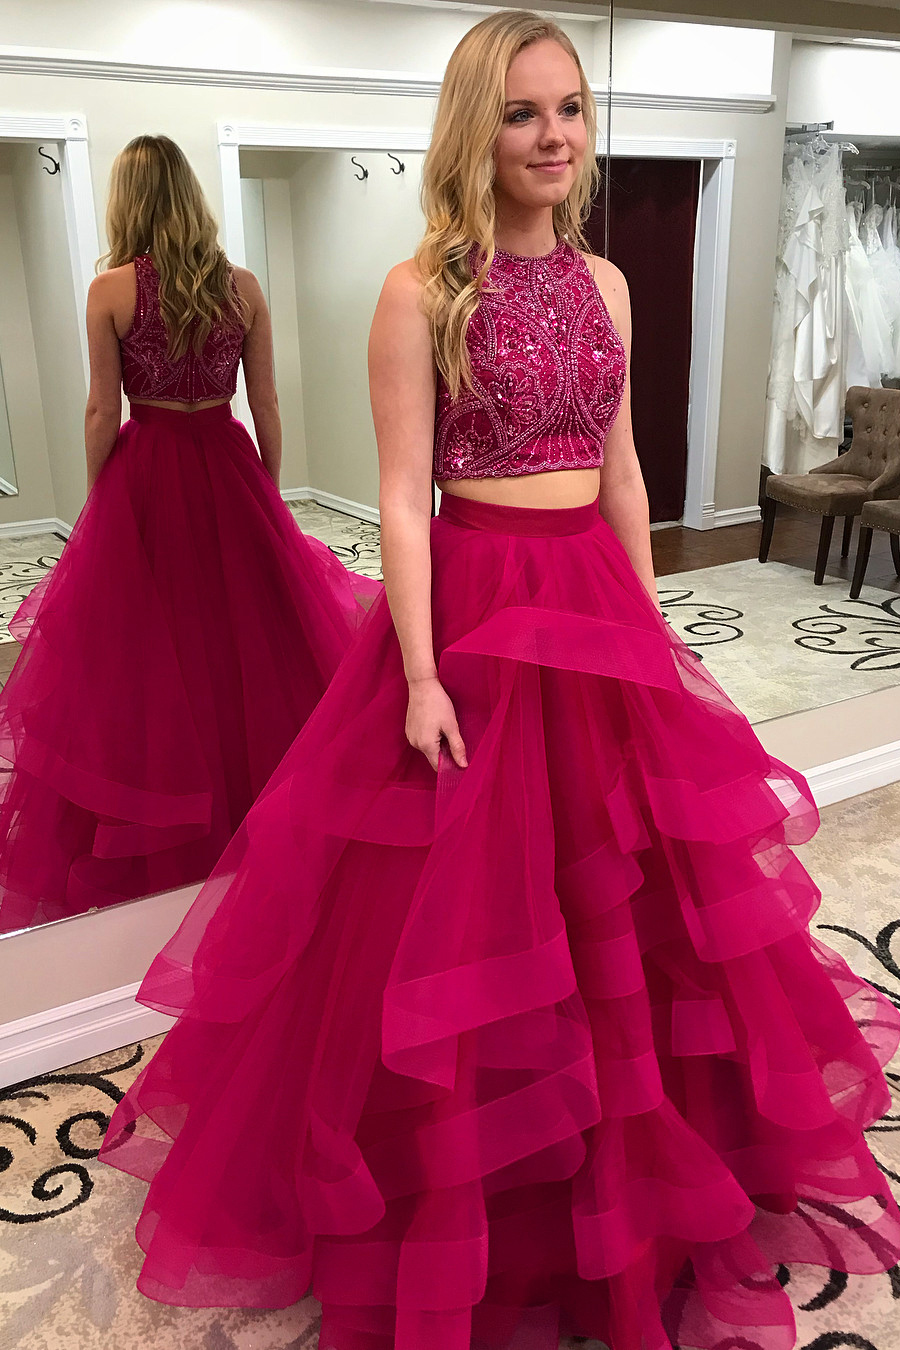 Hot Pink Prom Dress 2 Piece Prom Dresses Tiered Prom Dress Beaded